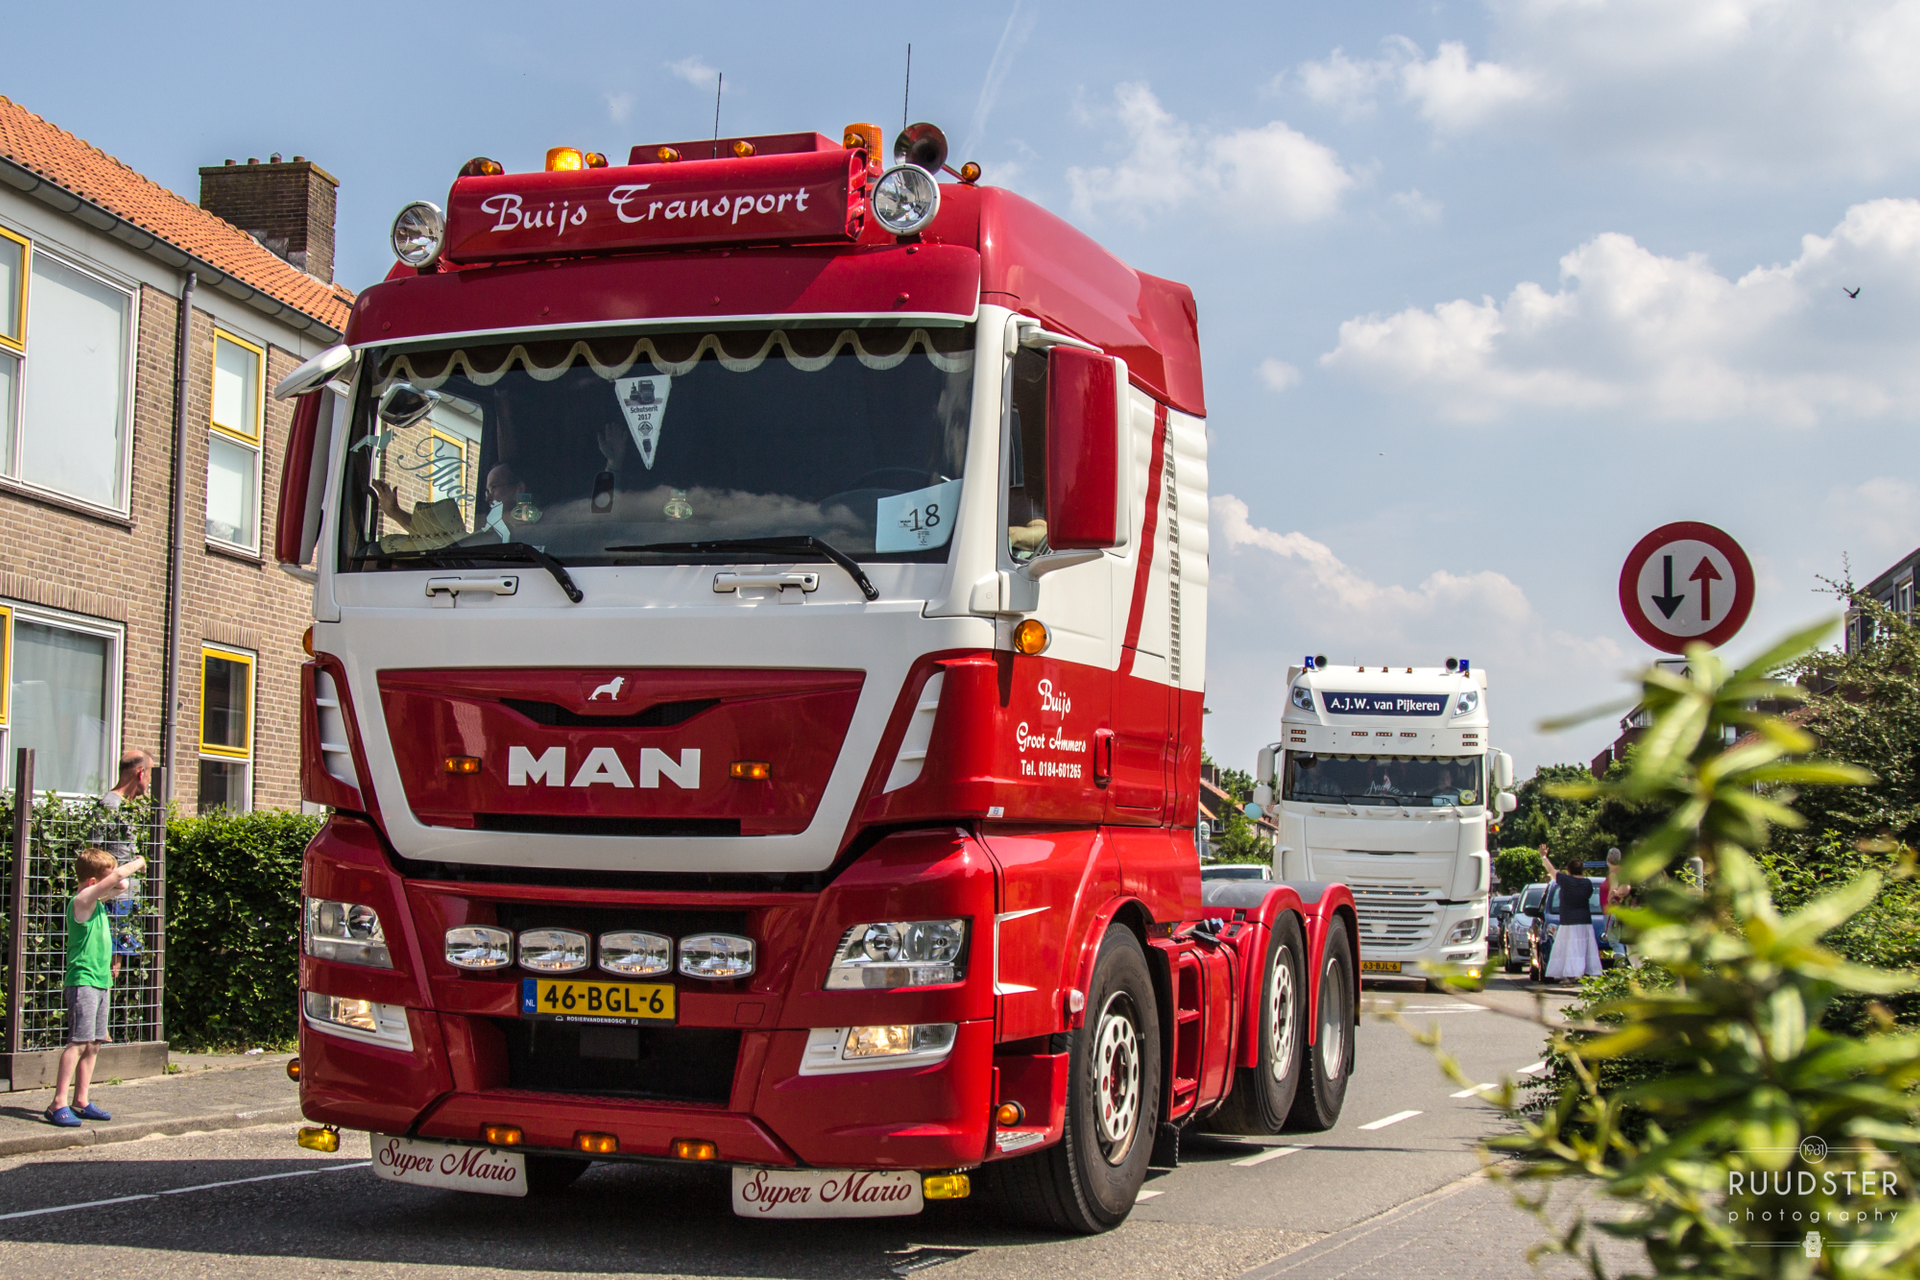 46-BGL-6 | Build: 2015 - MAN TGX